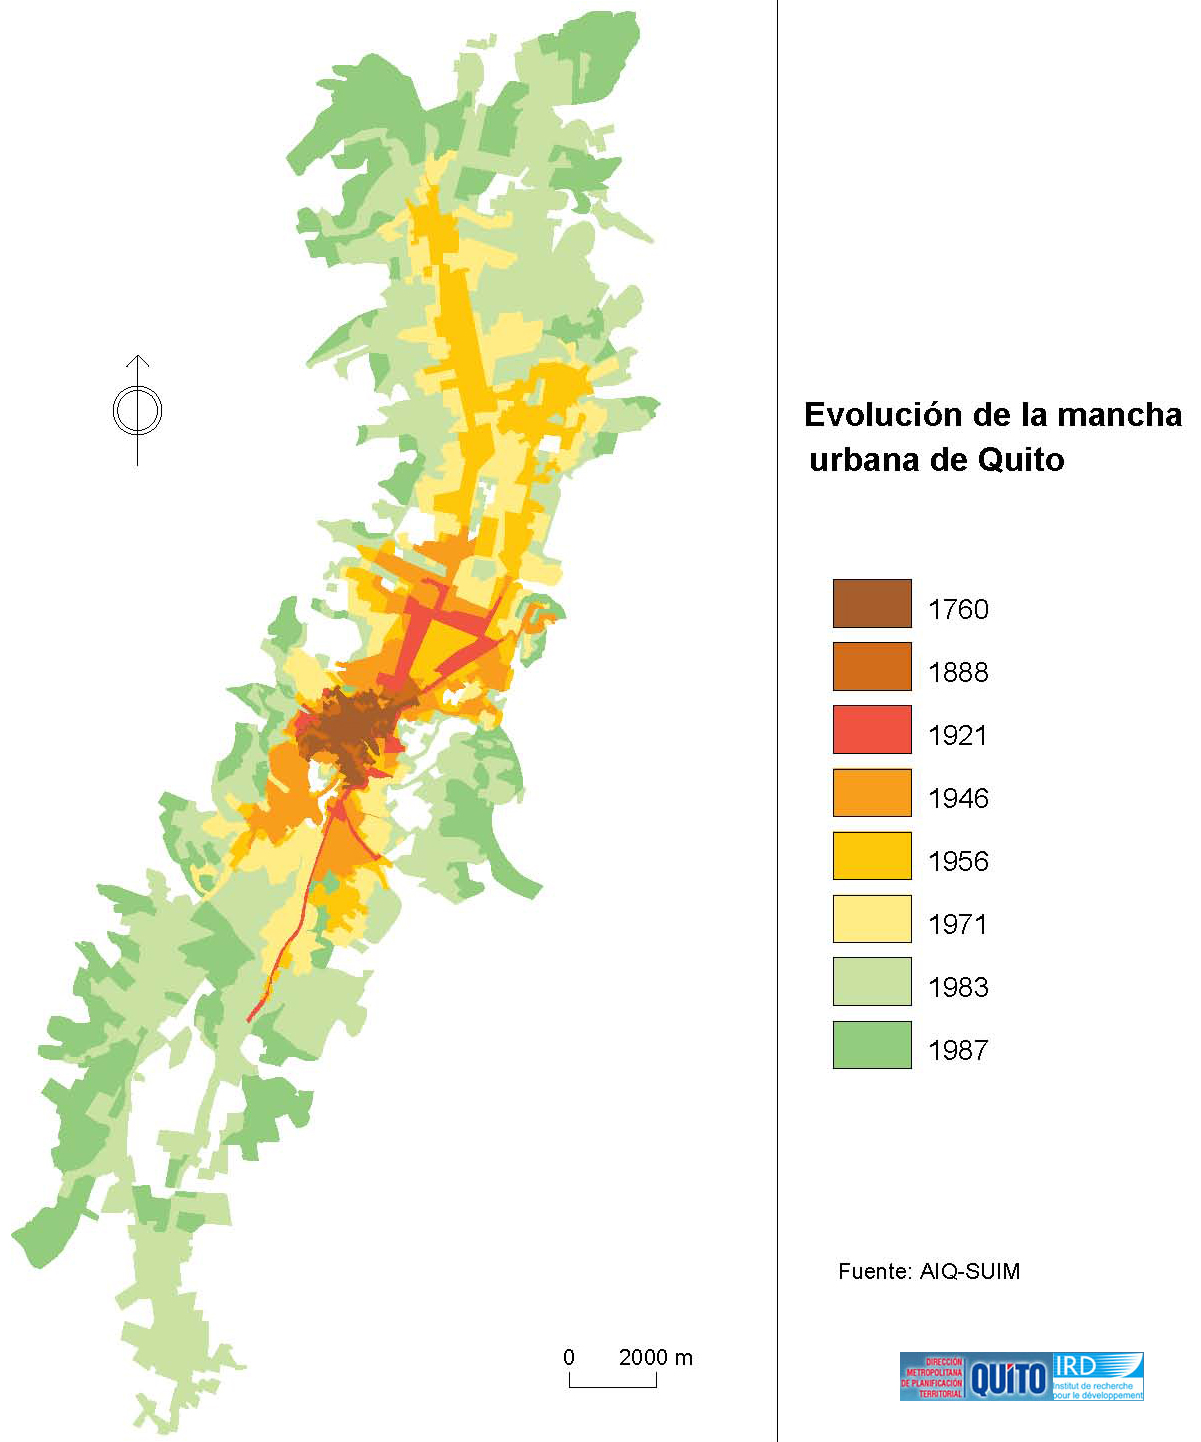 The evolution of the urban area of Quito 1760-1987